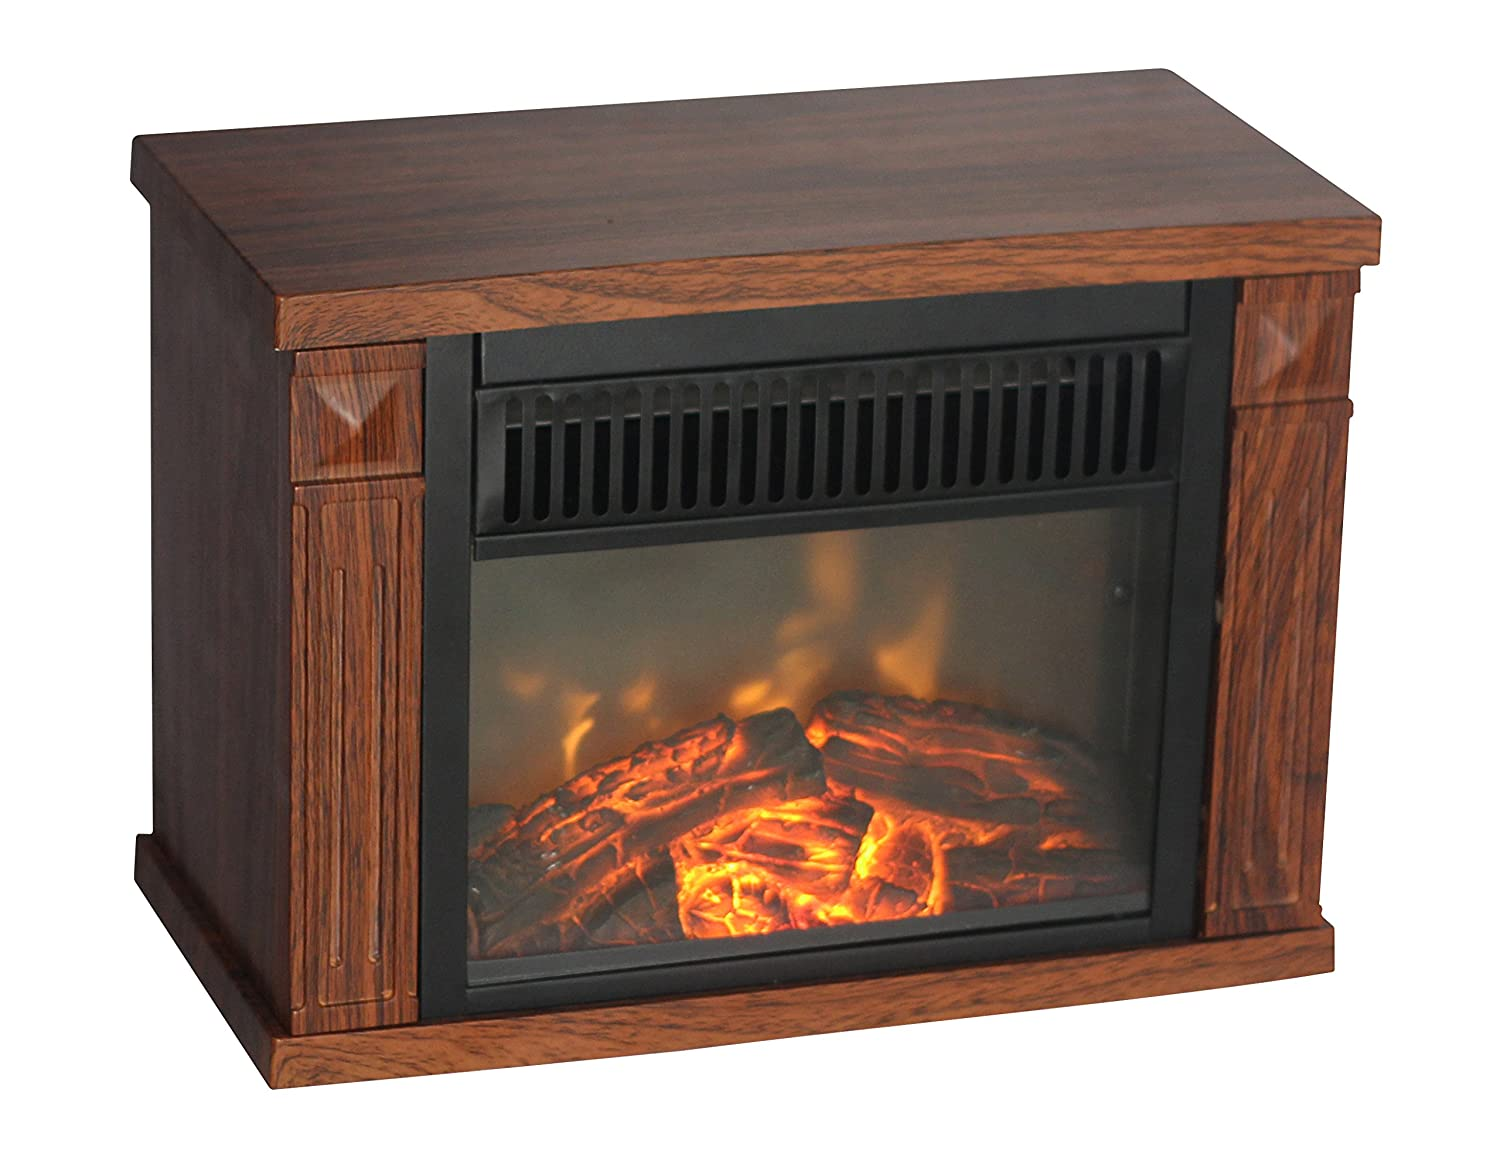 bio ventless tabletop fireplace ethanol p flame quick elite portable view lyon